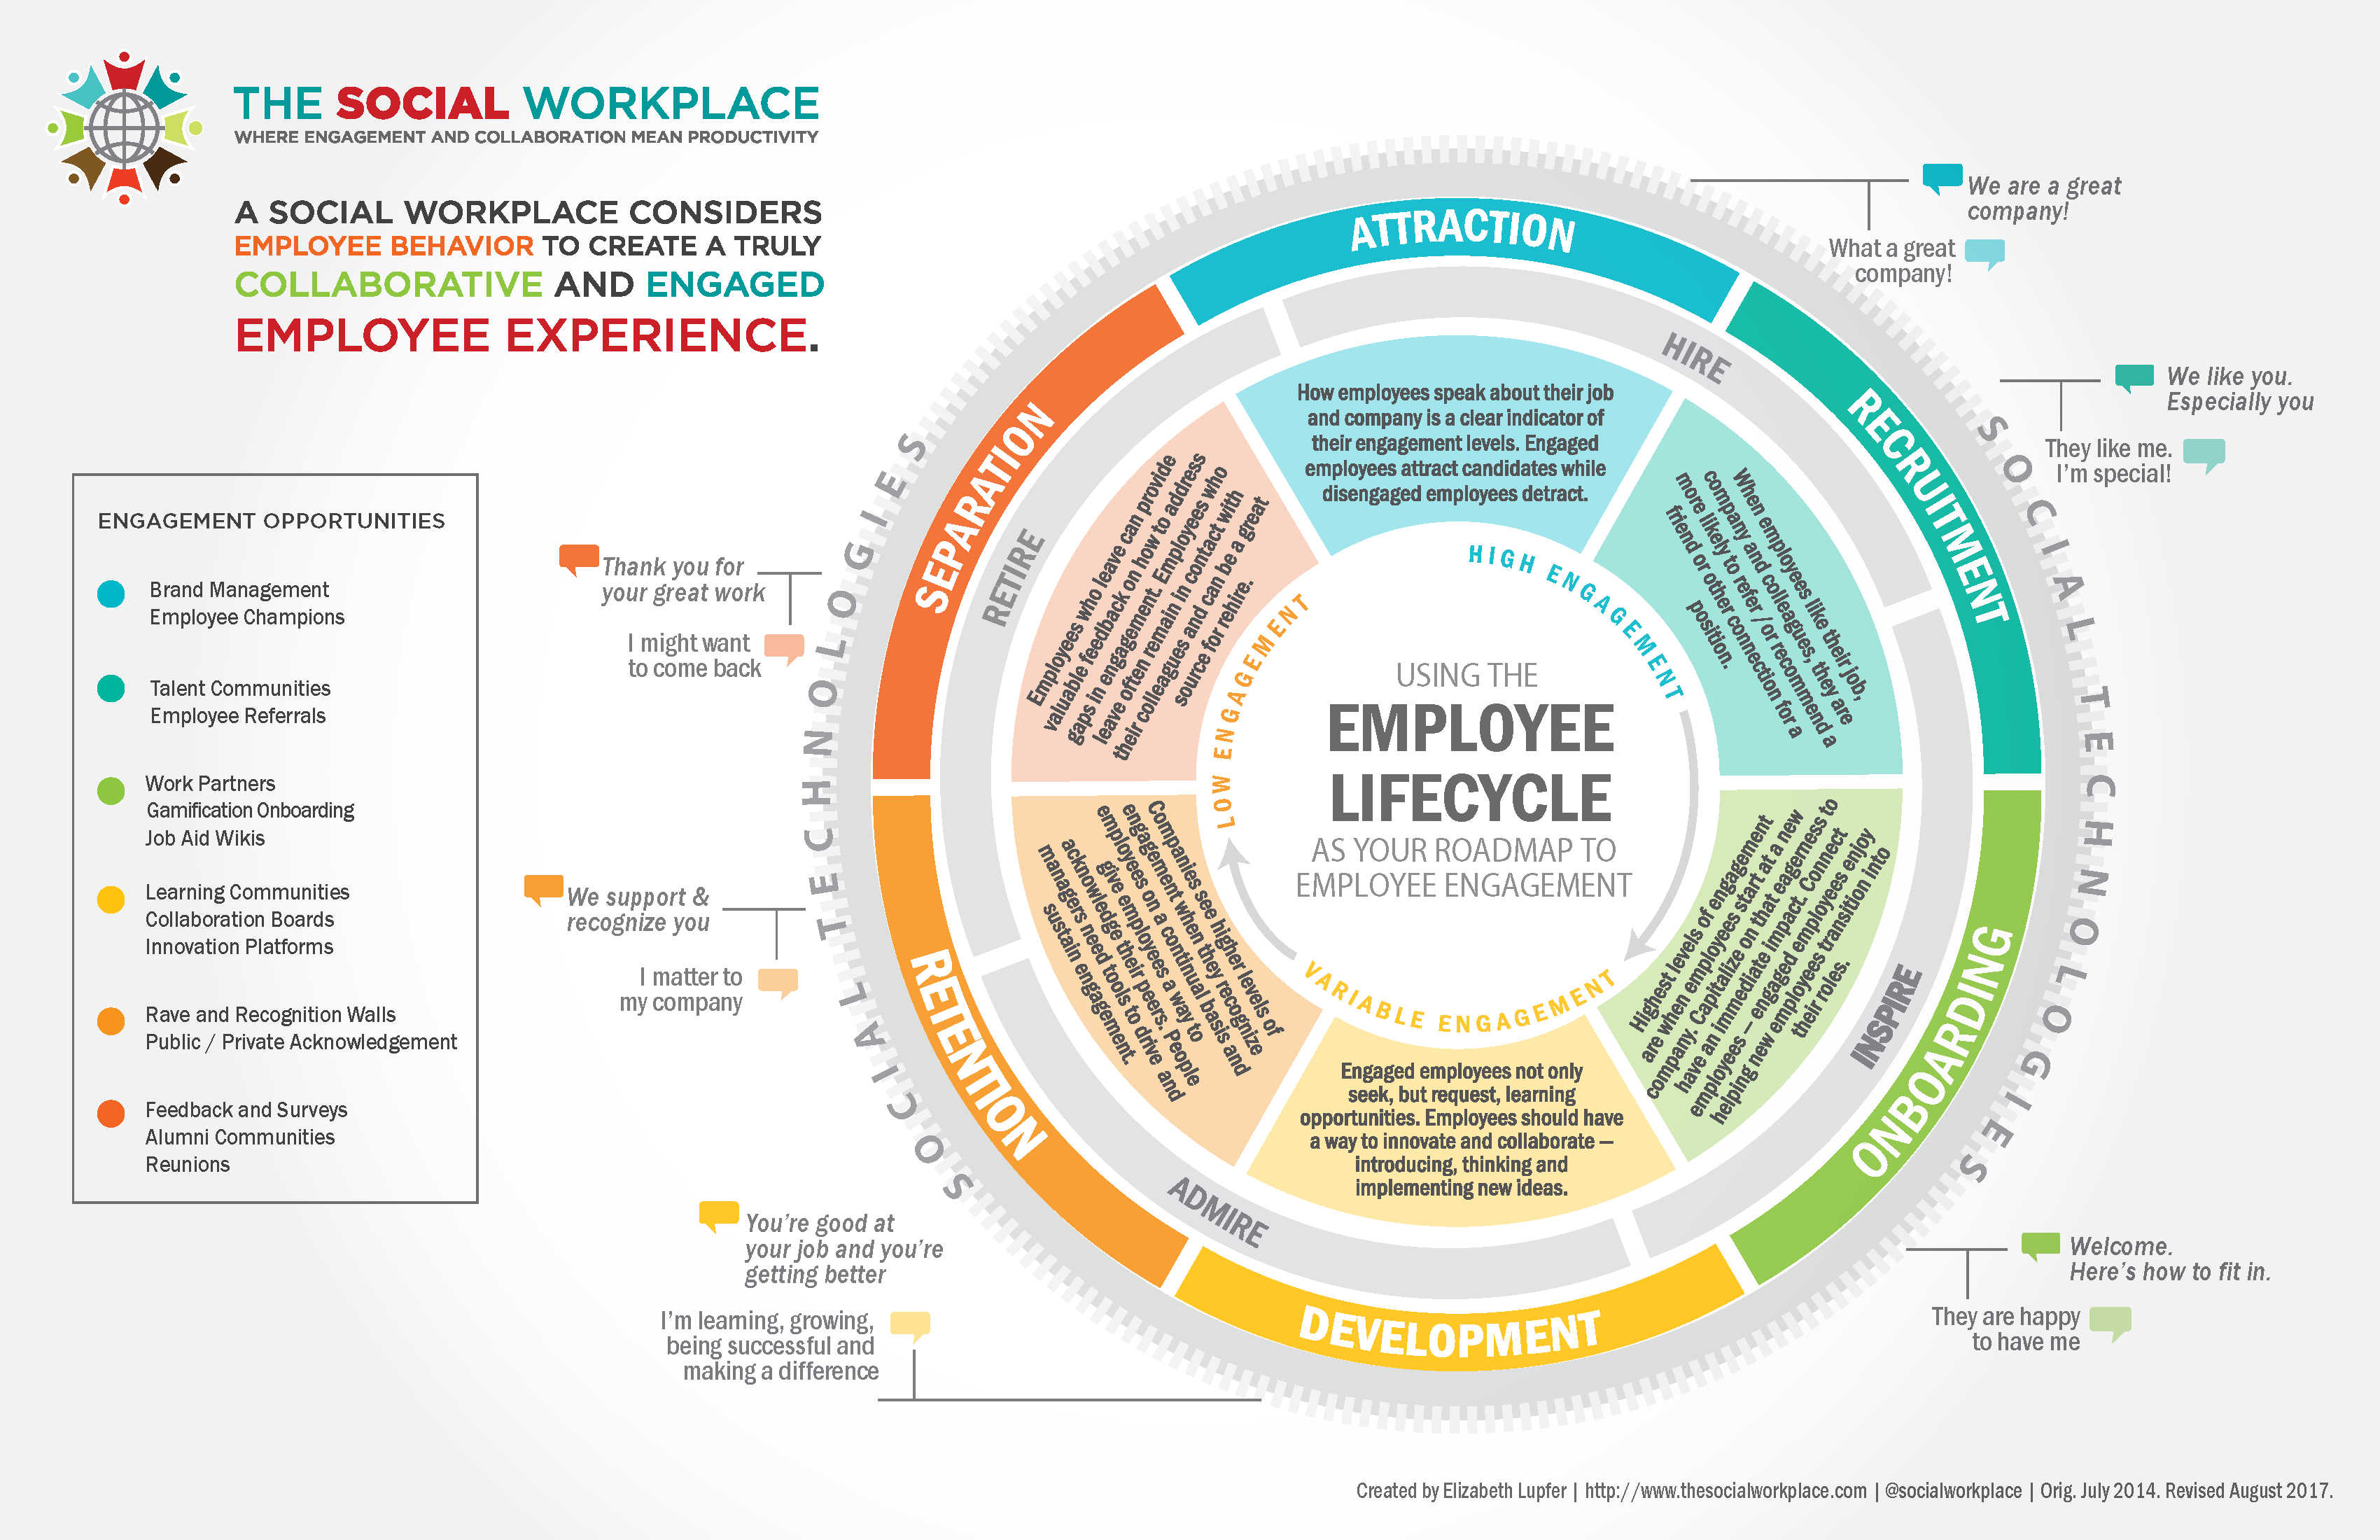 The Employee Lifecycle Is Your Roadmap To Building An